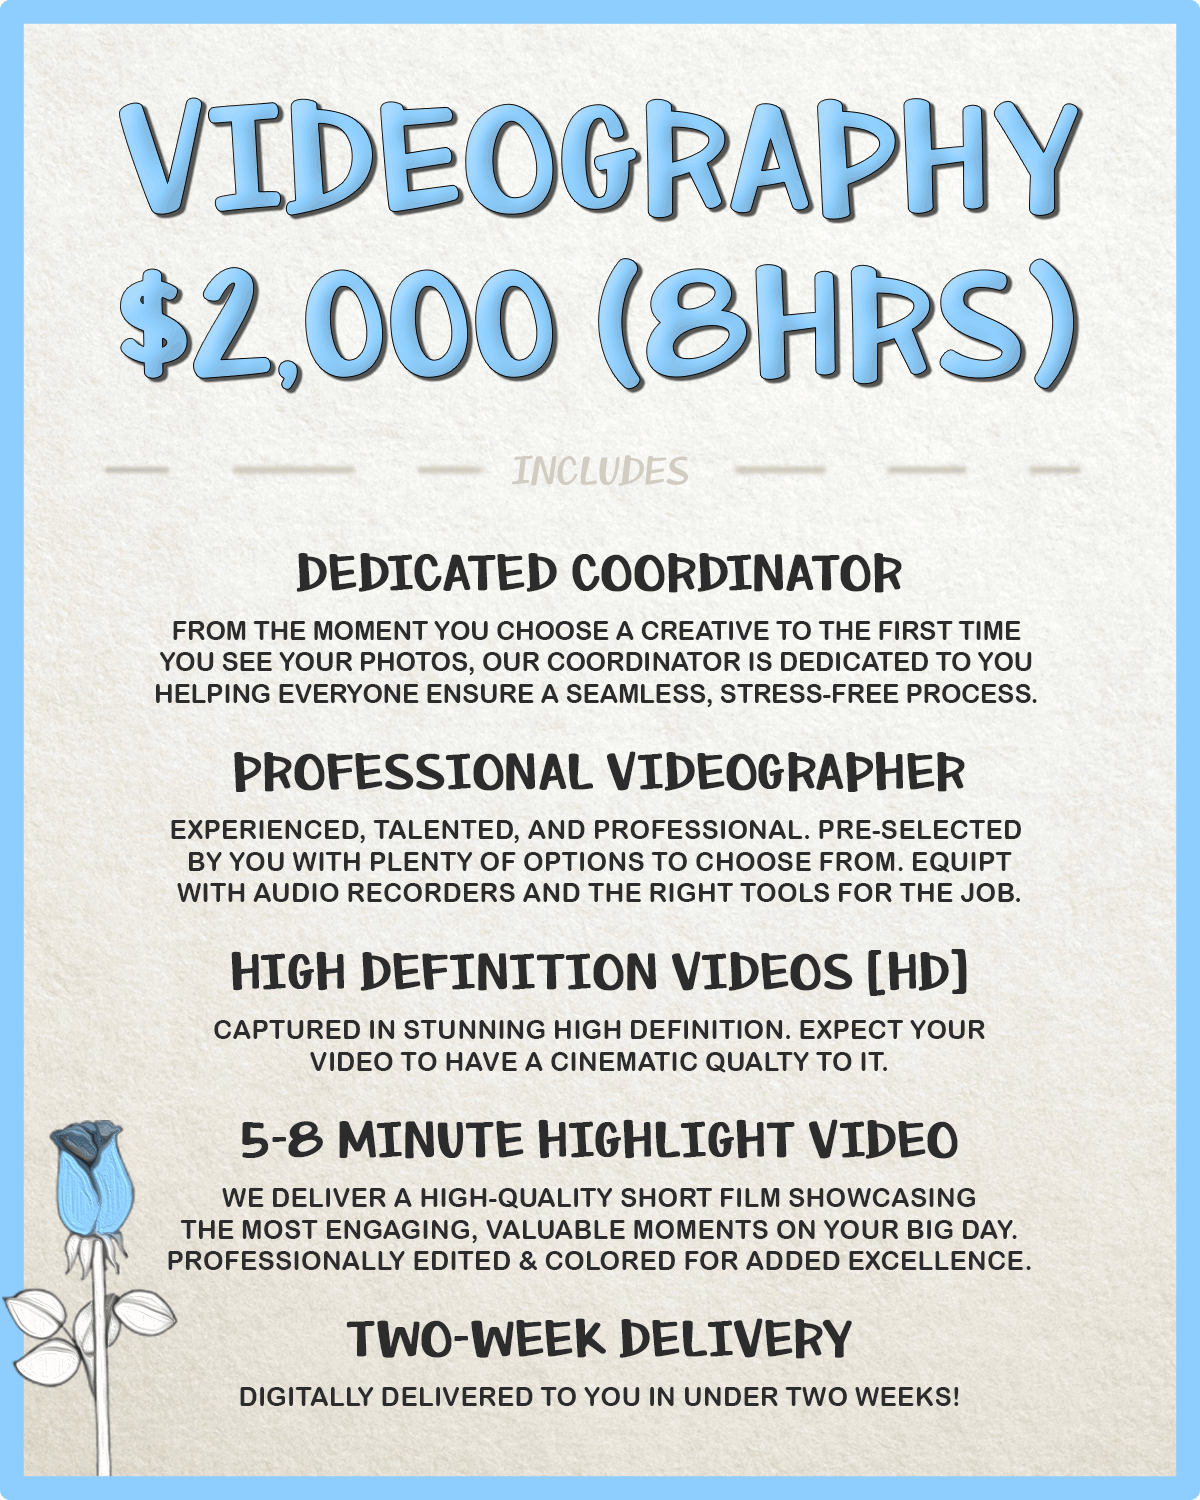 Weddings-Recorded-Videography-Prices.png